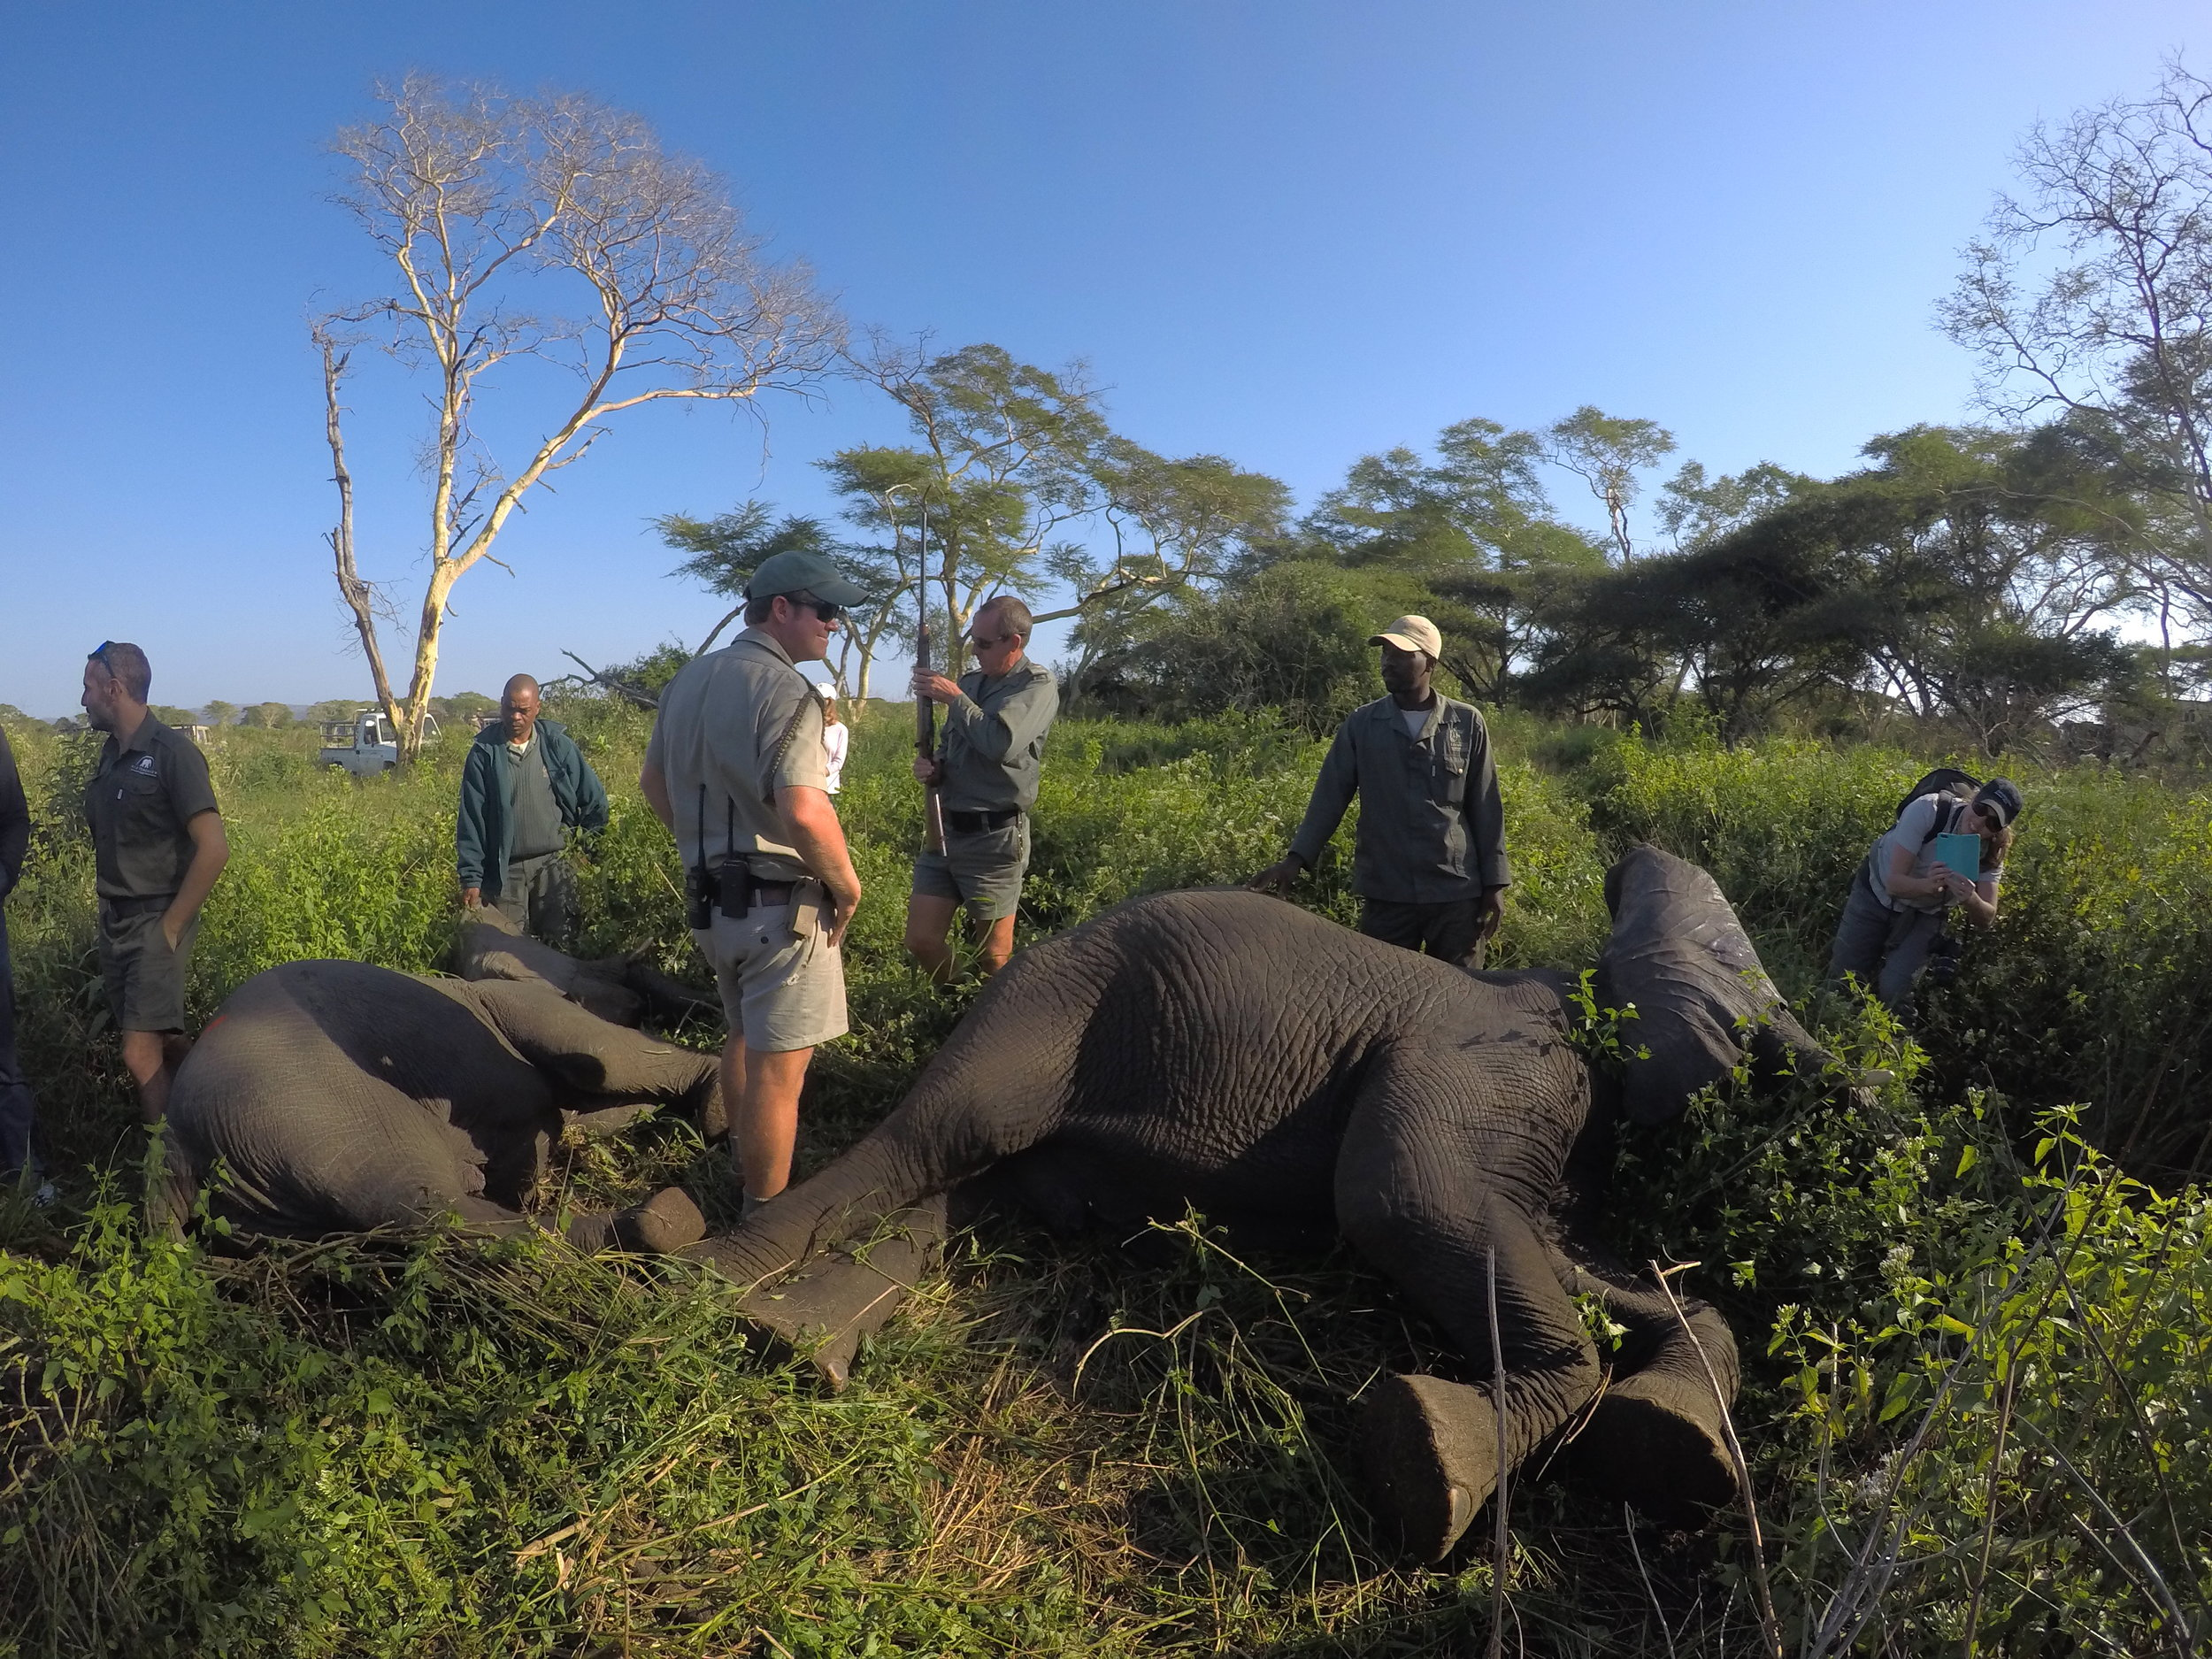 Ground crews arrive on the scene and begin to stabilize the elephants.